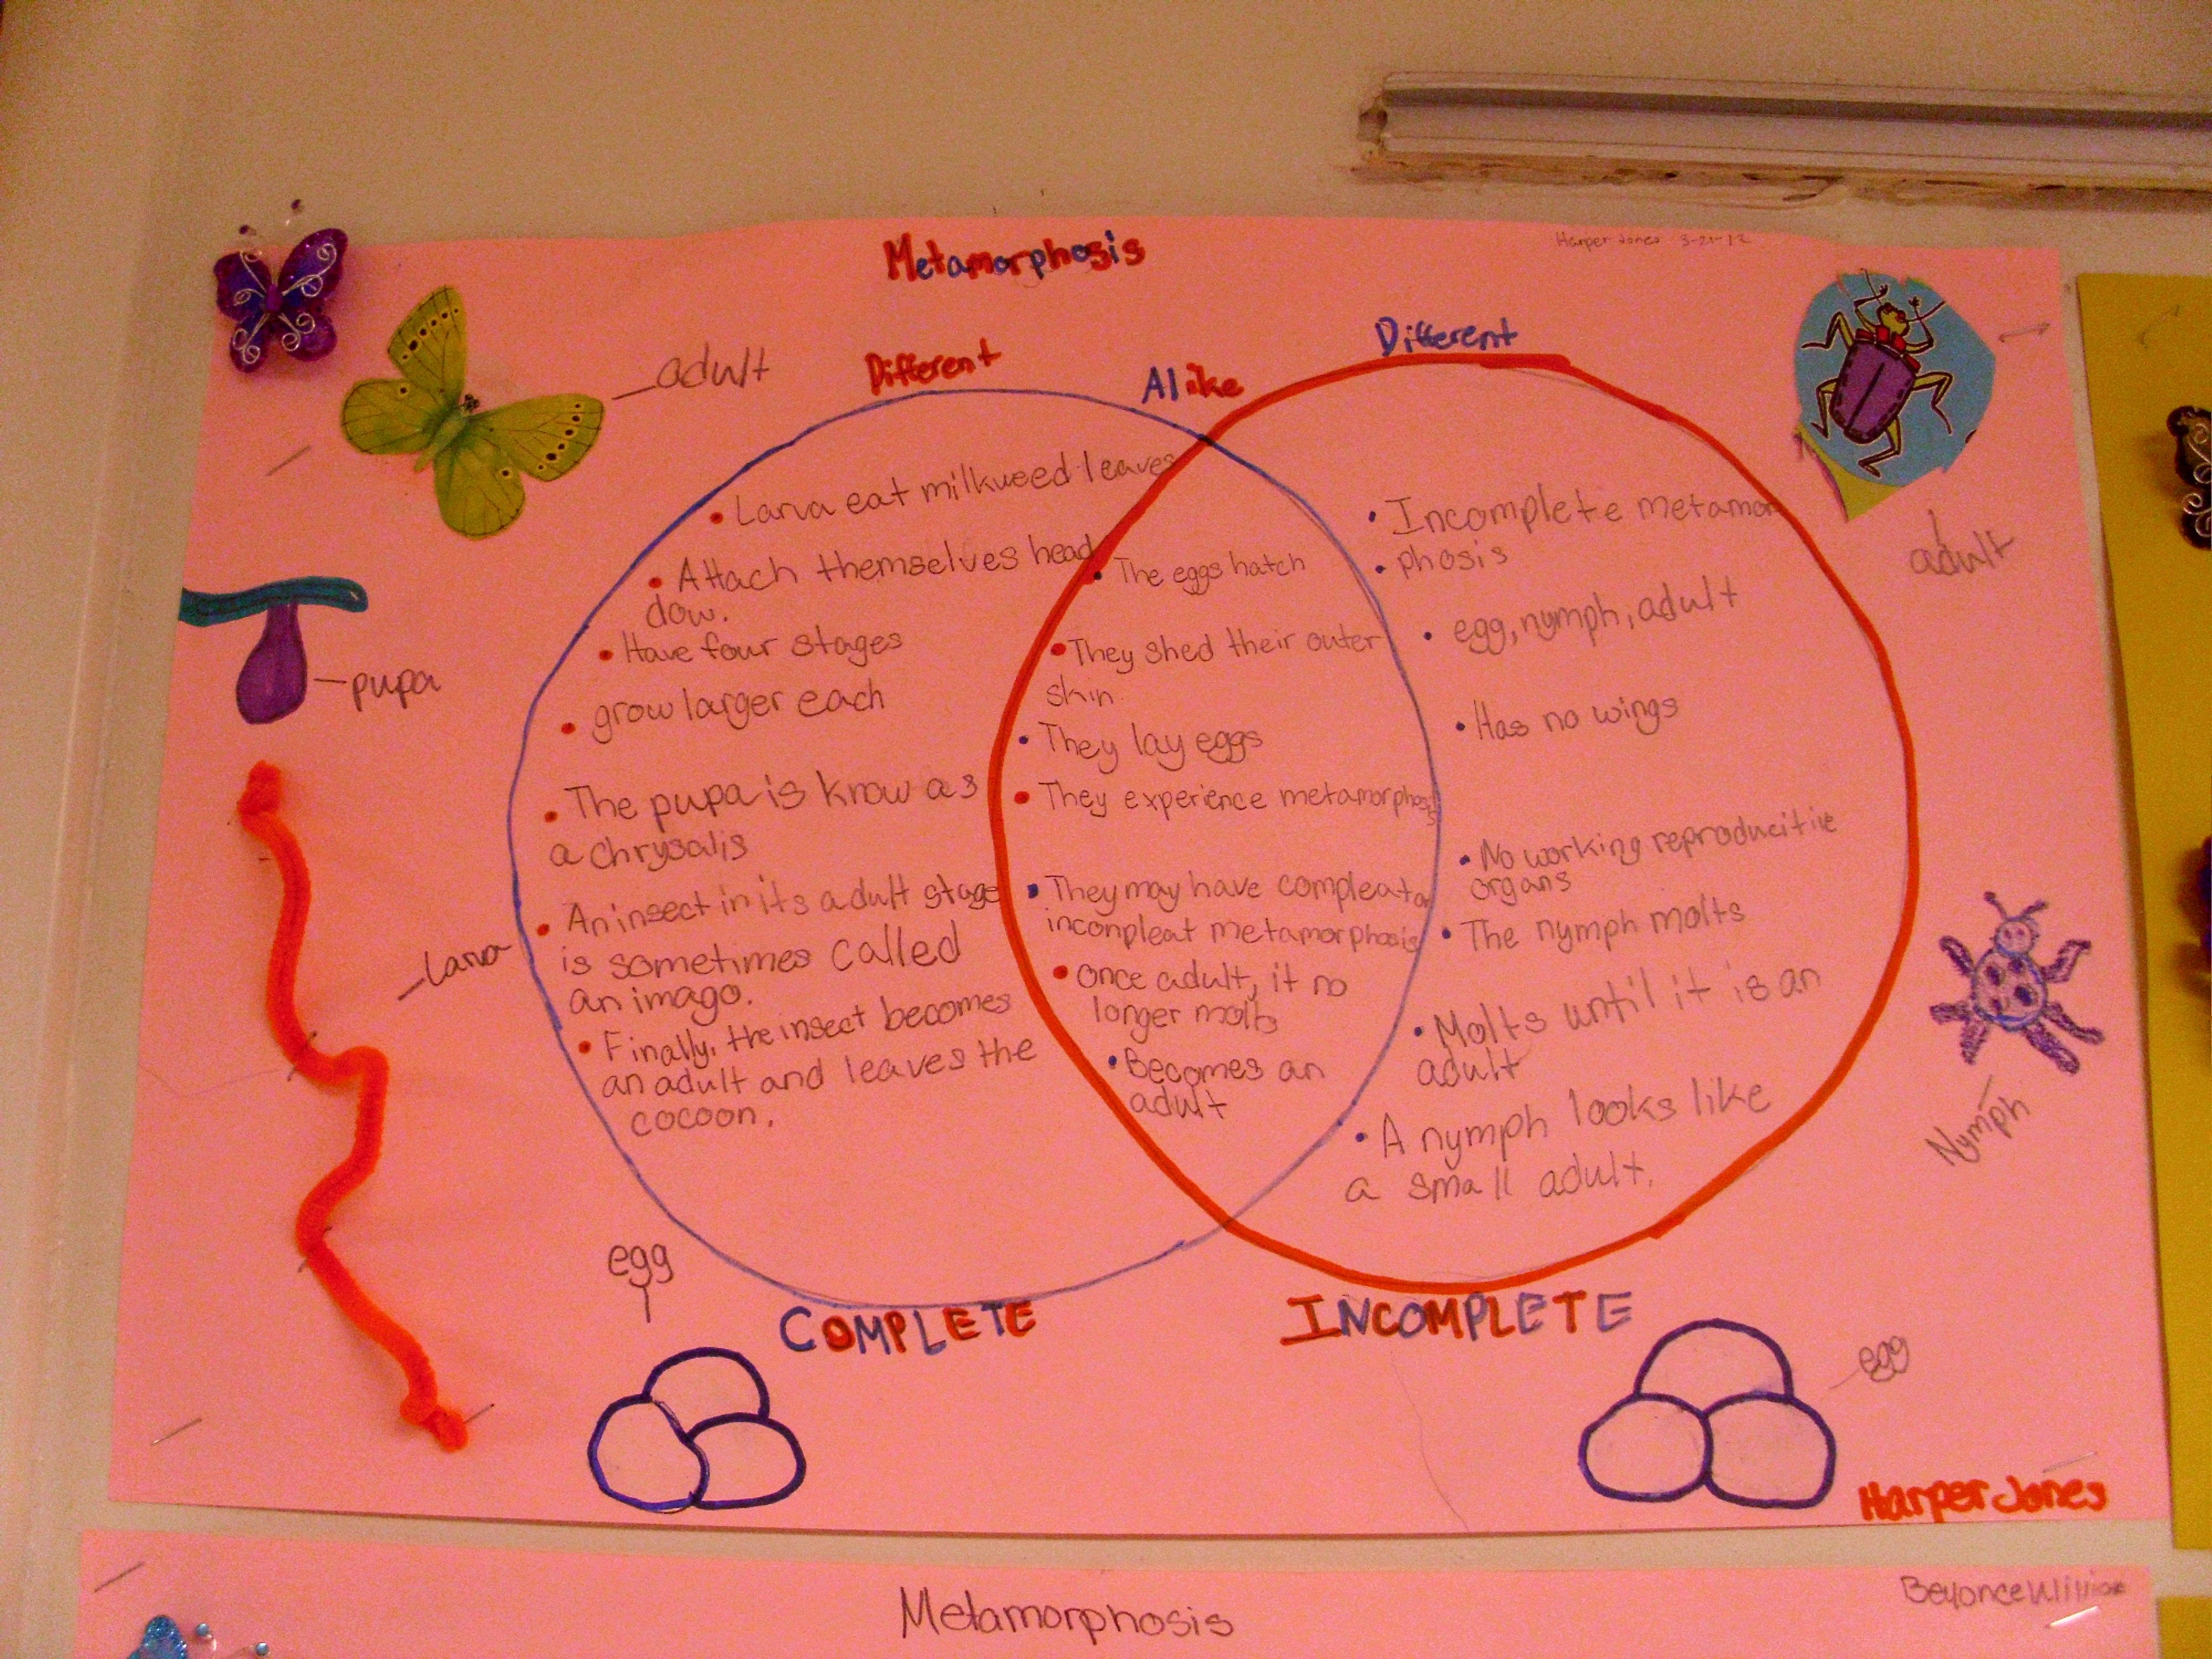 hight resolution of complete and incomplete metamorphosis venn diagram fourth grade science elementary science science education